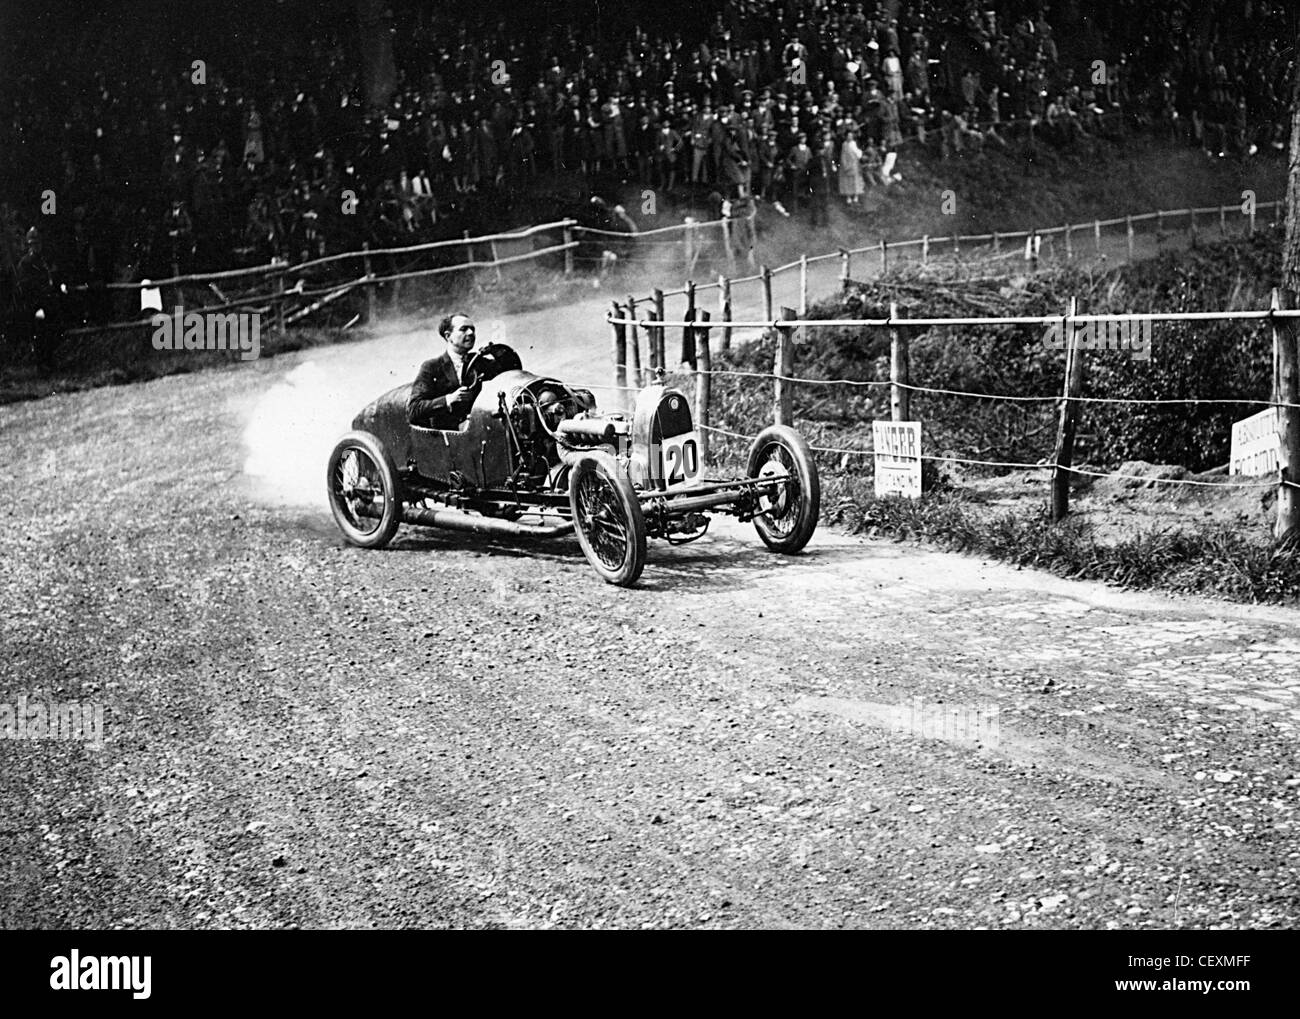 Raymond Mays in A.C. Supercharged at speed during Shelsley Walsh event 1925 - Stock Image